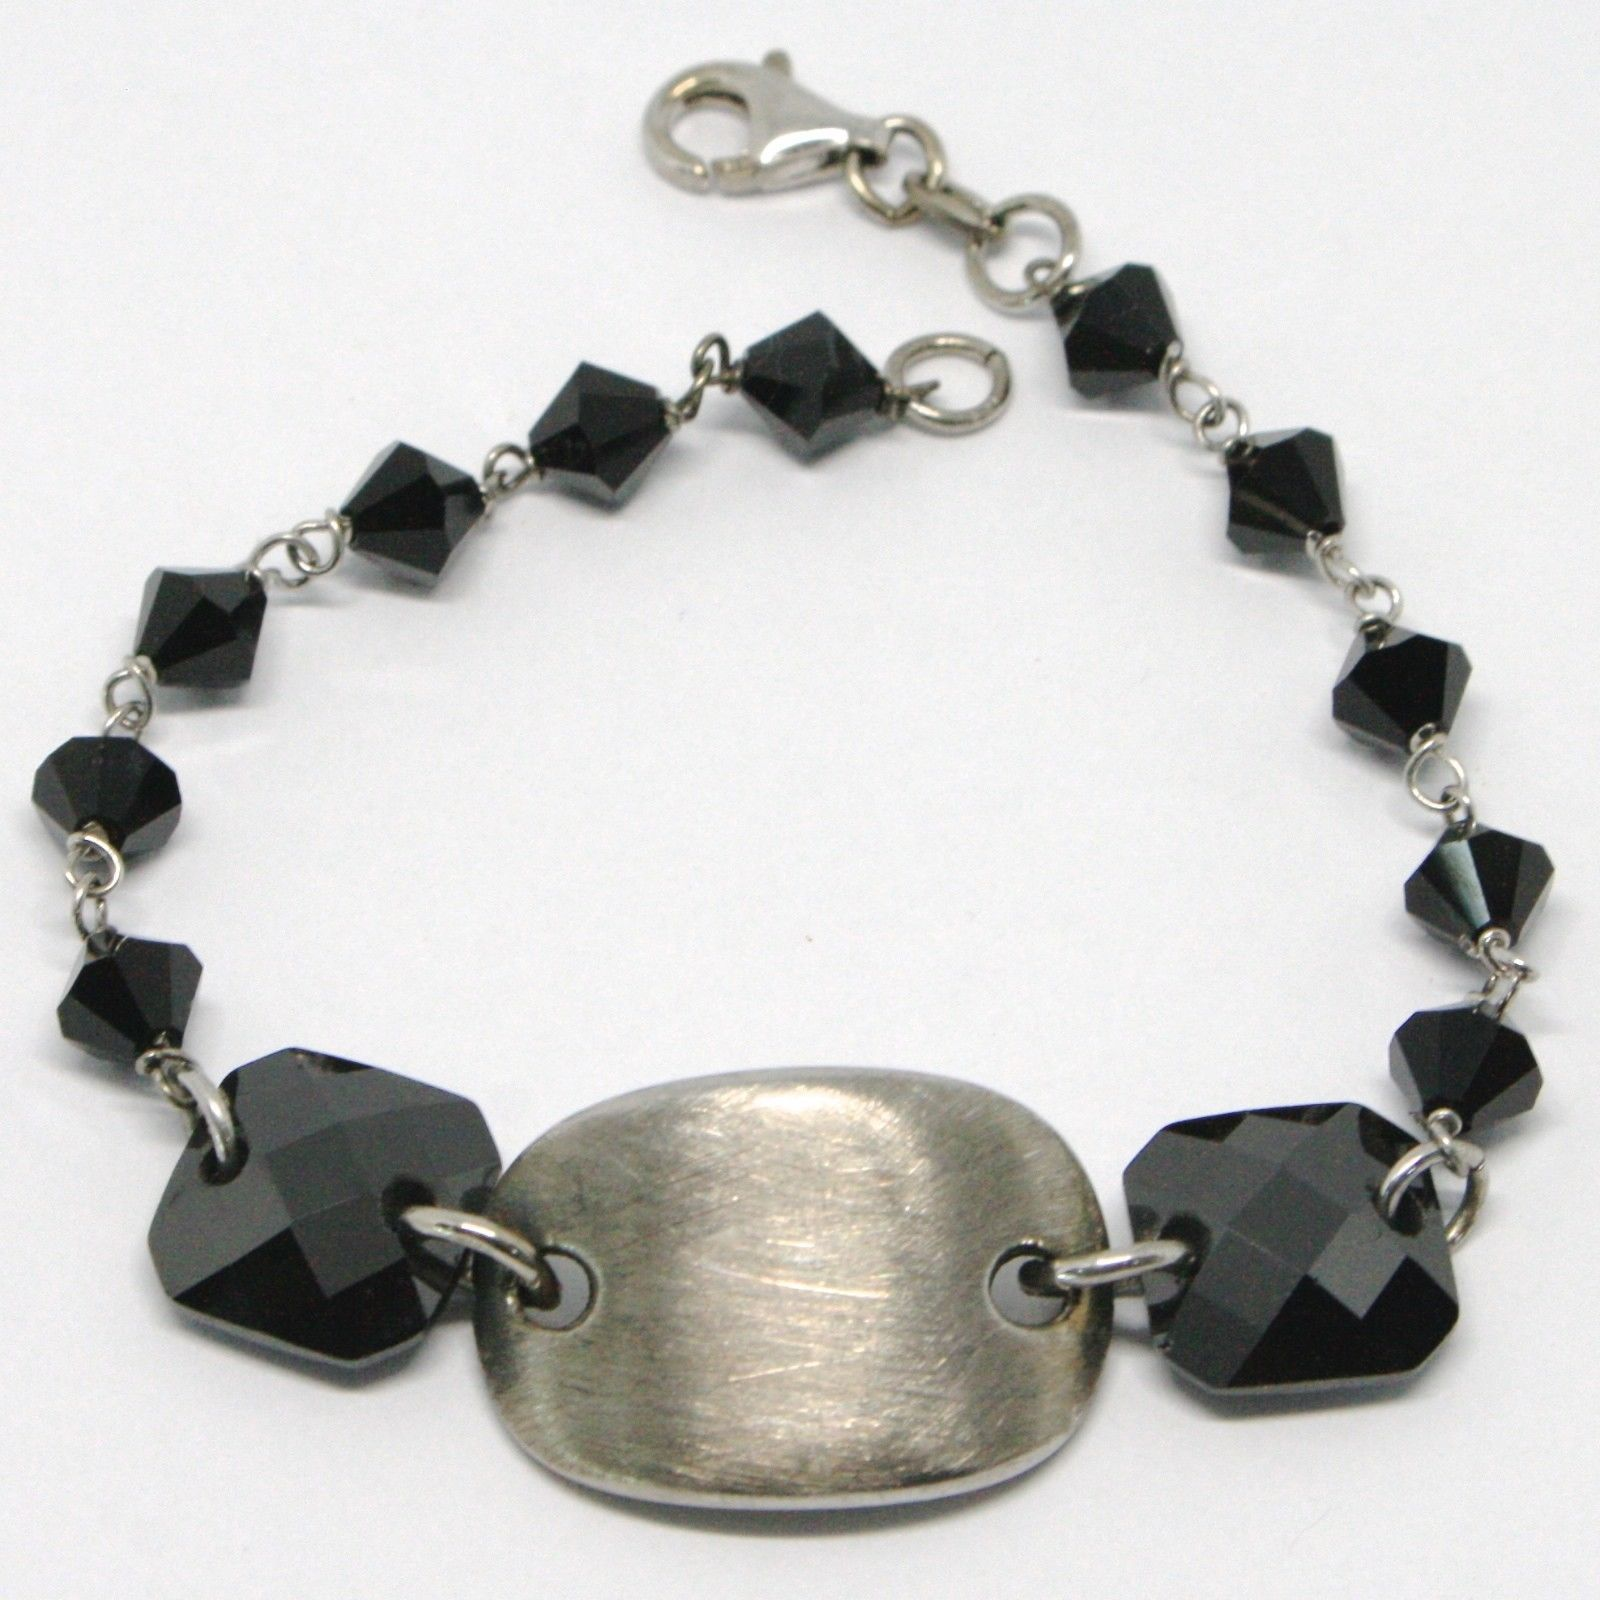 925 STERLING SILVER BRACELET BLACK FACETED SQUARE, WORKED SATIN CENTRAL OVAL